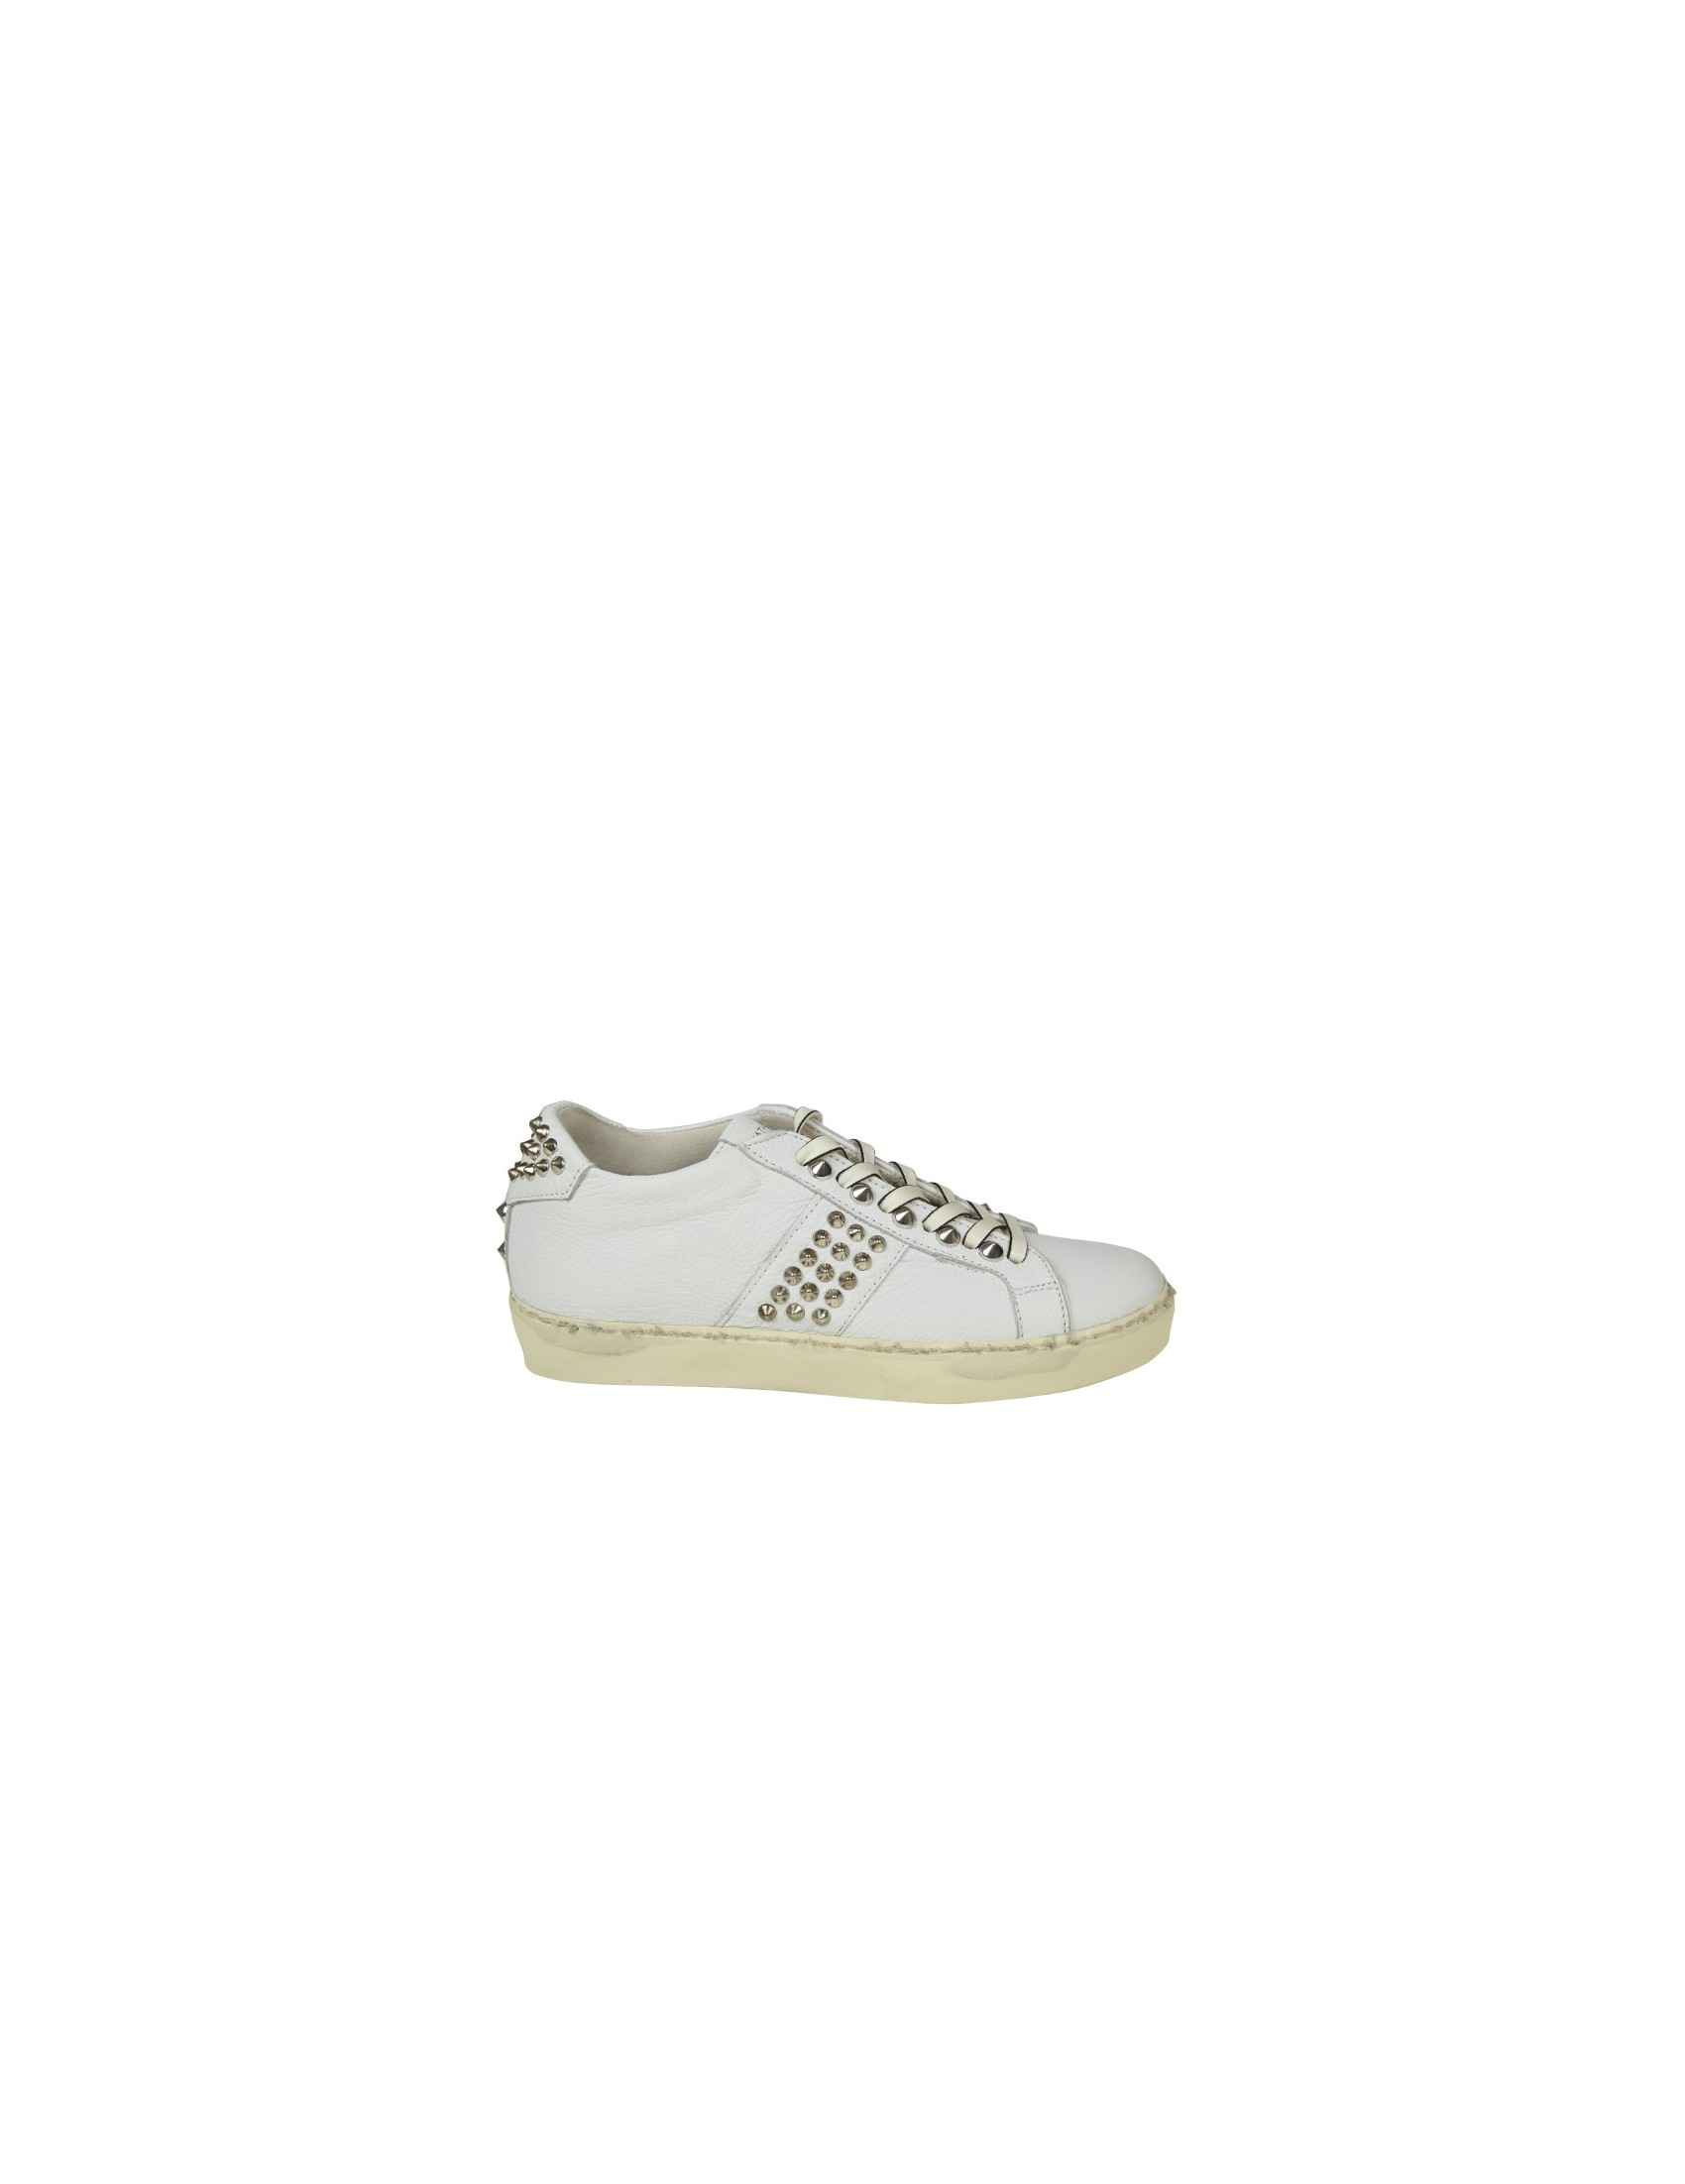 LEATHER CROWN SNEAKERS IN PELLE CON BORCHIE COLORE BIANCO bab5c11bd4a